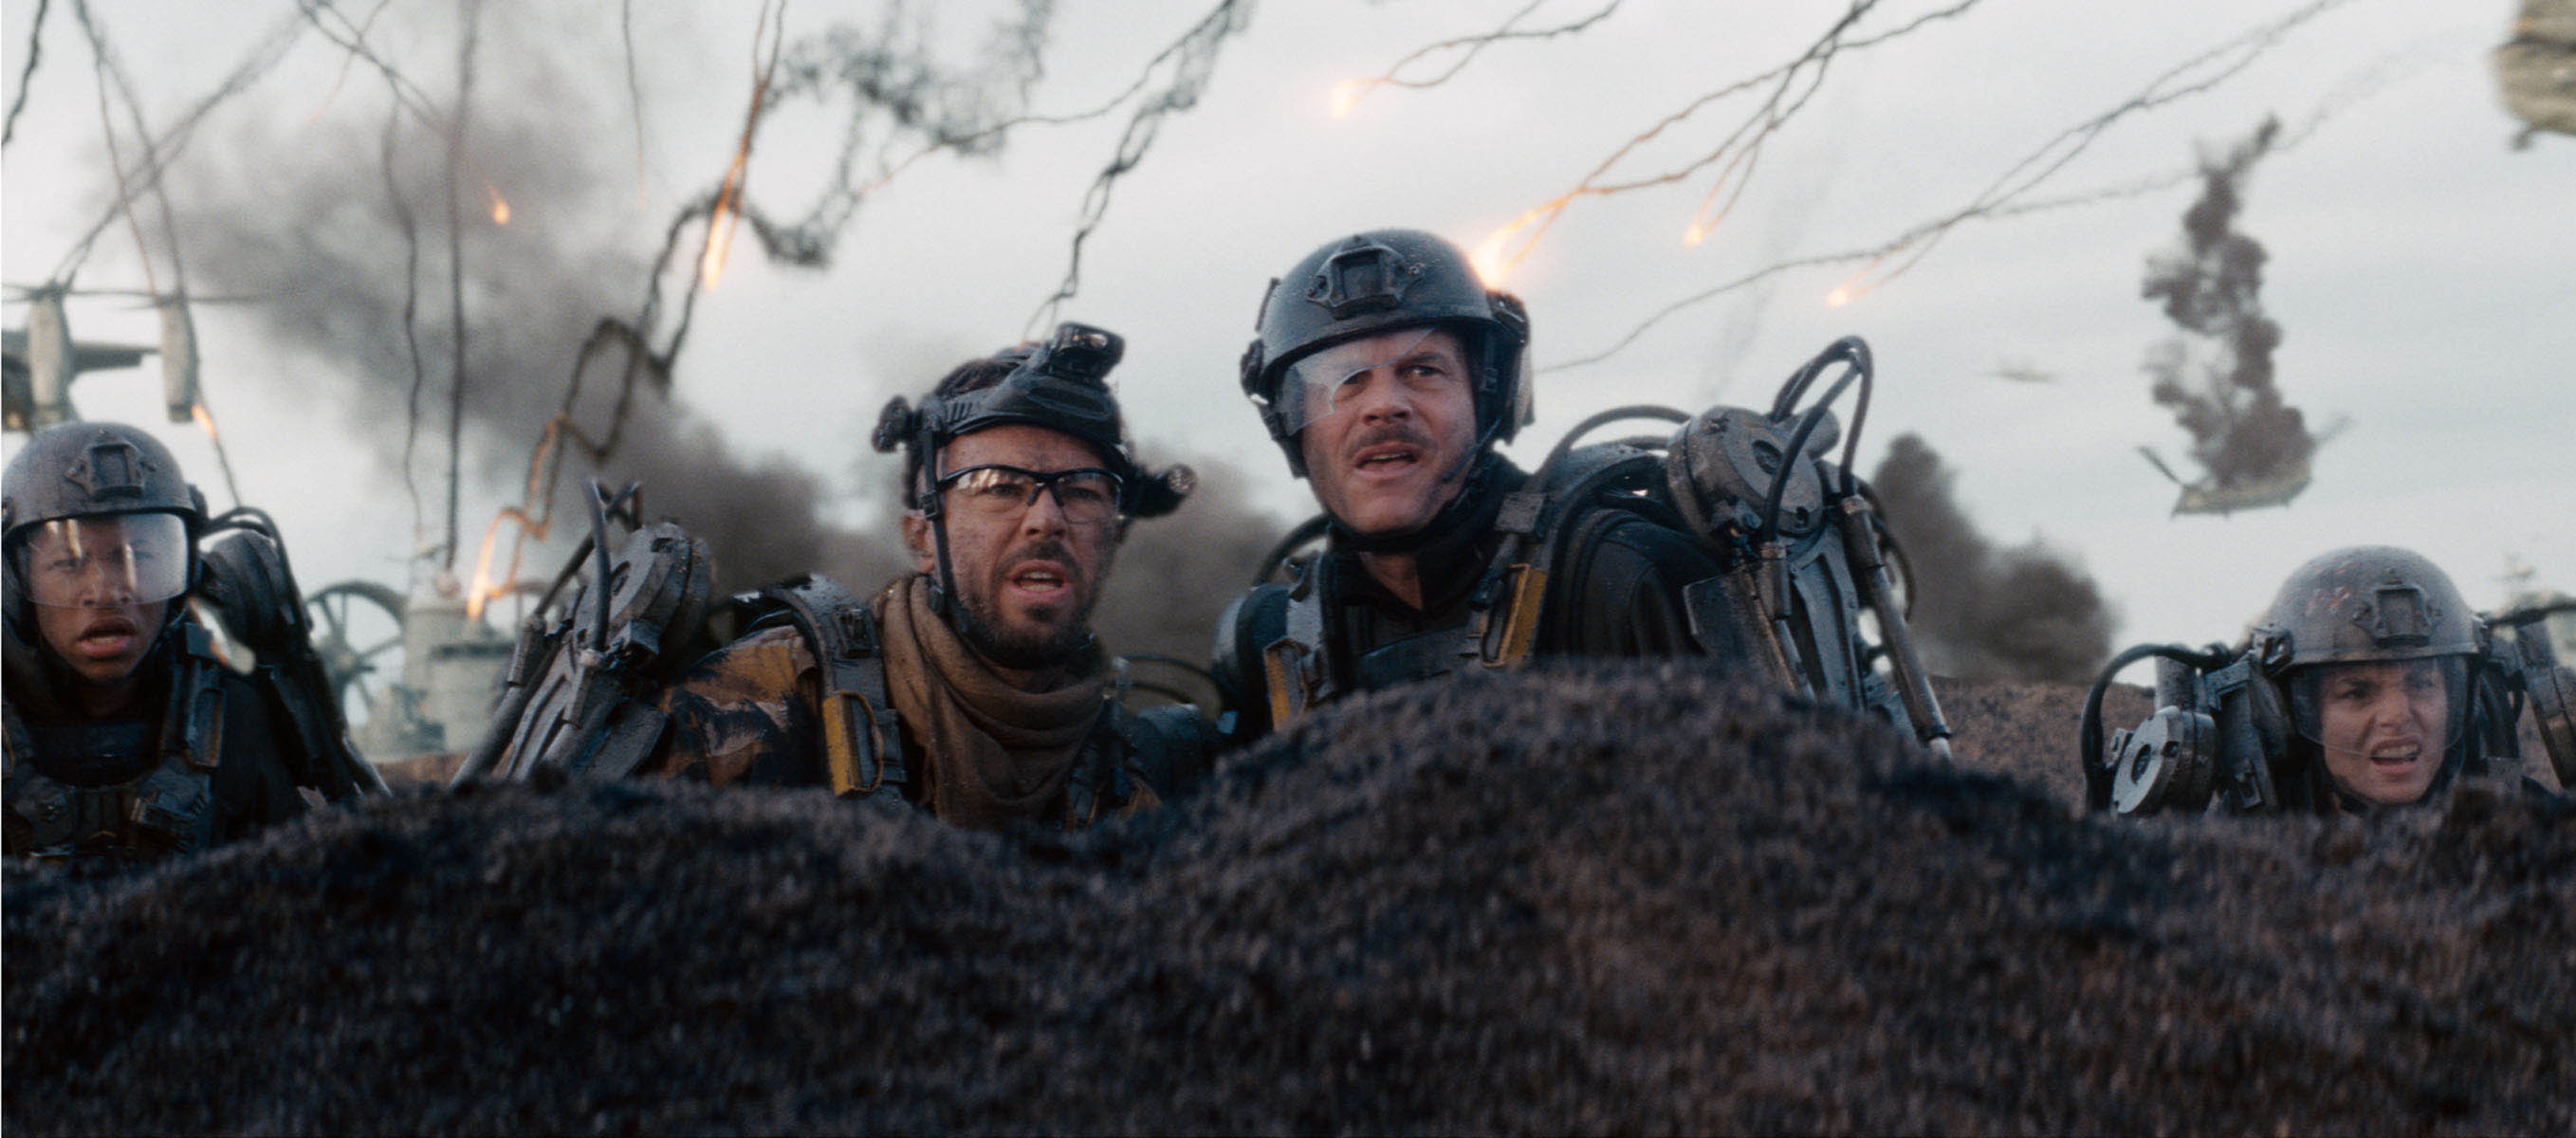 Edge of Tomorrow Photo 38 - Large